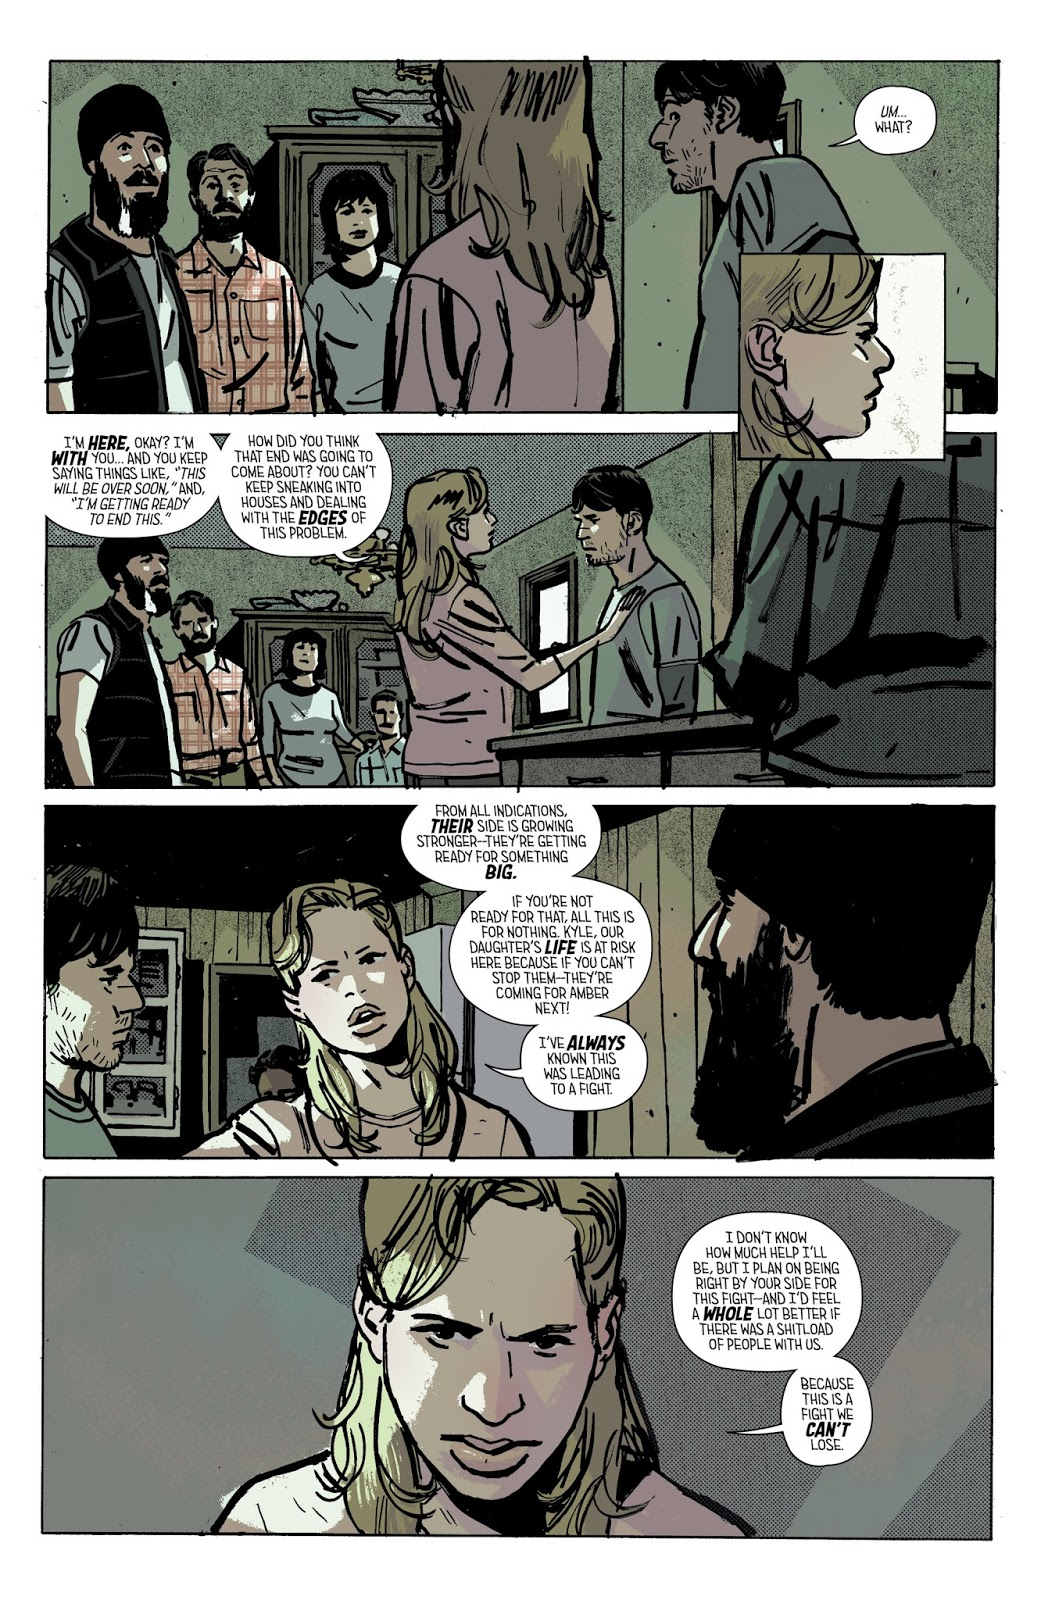 Outcast Invasion review